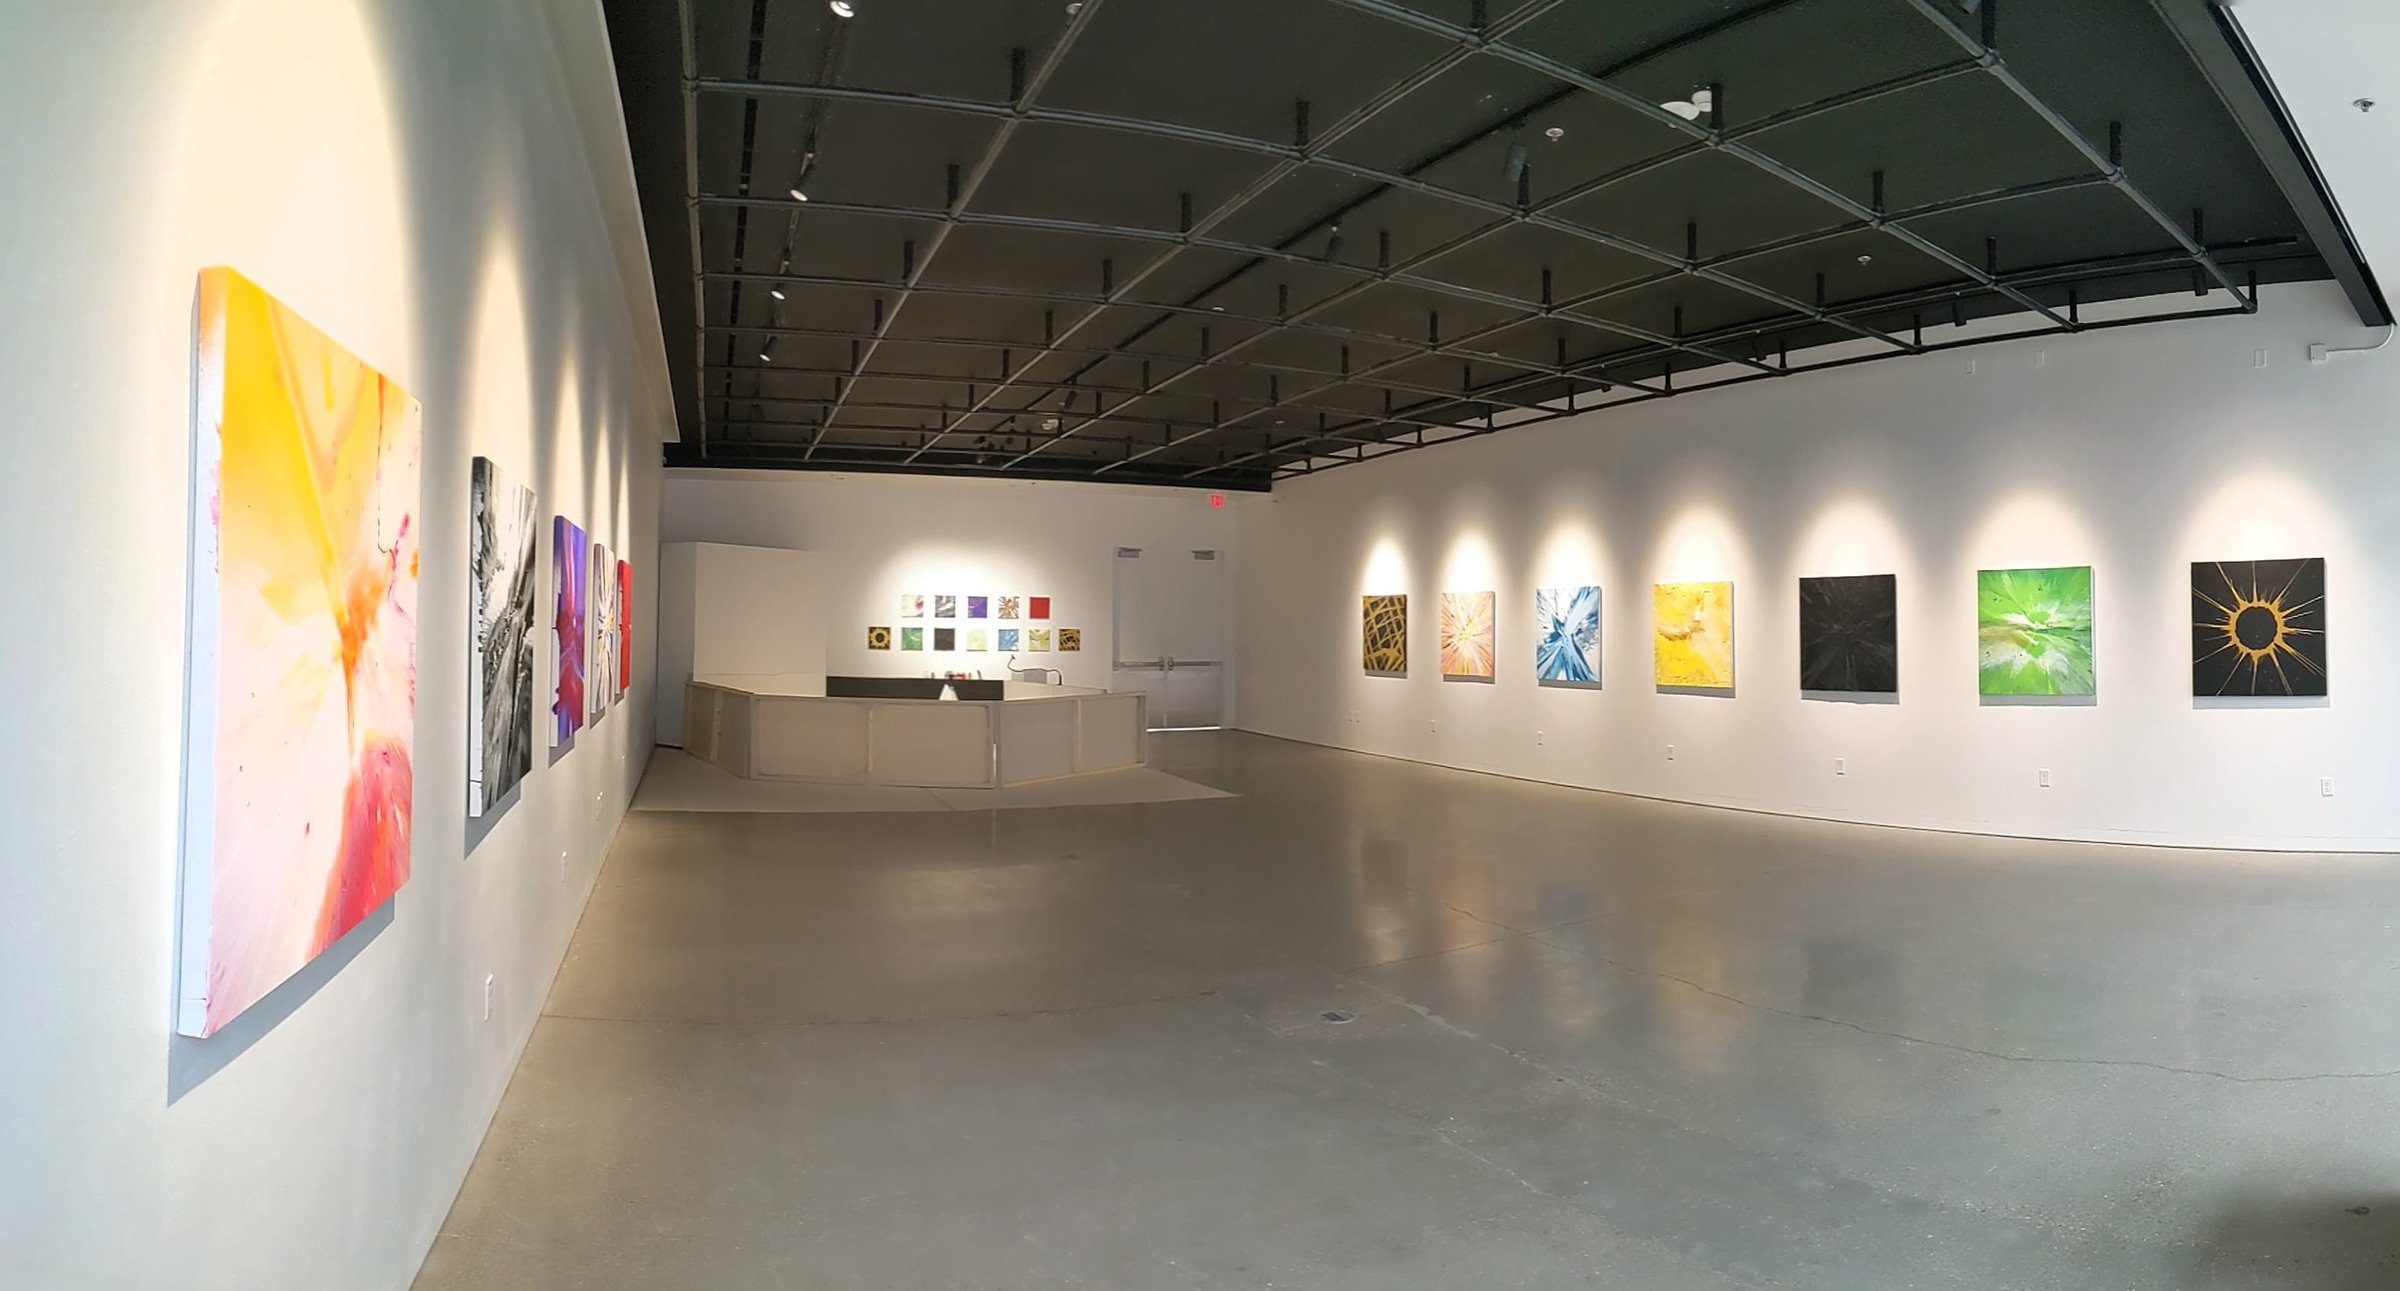 Installation view of Abstract   React   Impact Master of Fine Arts Exhibition by Paul Bulgin at the Art Lofts Gallery, University of Wisconsin-Madison.